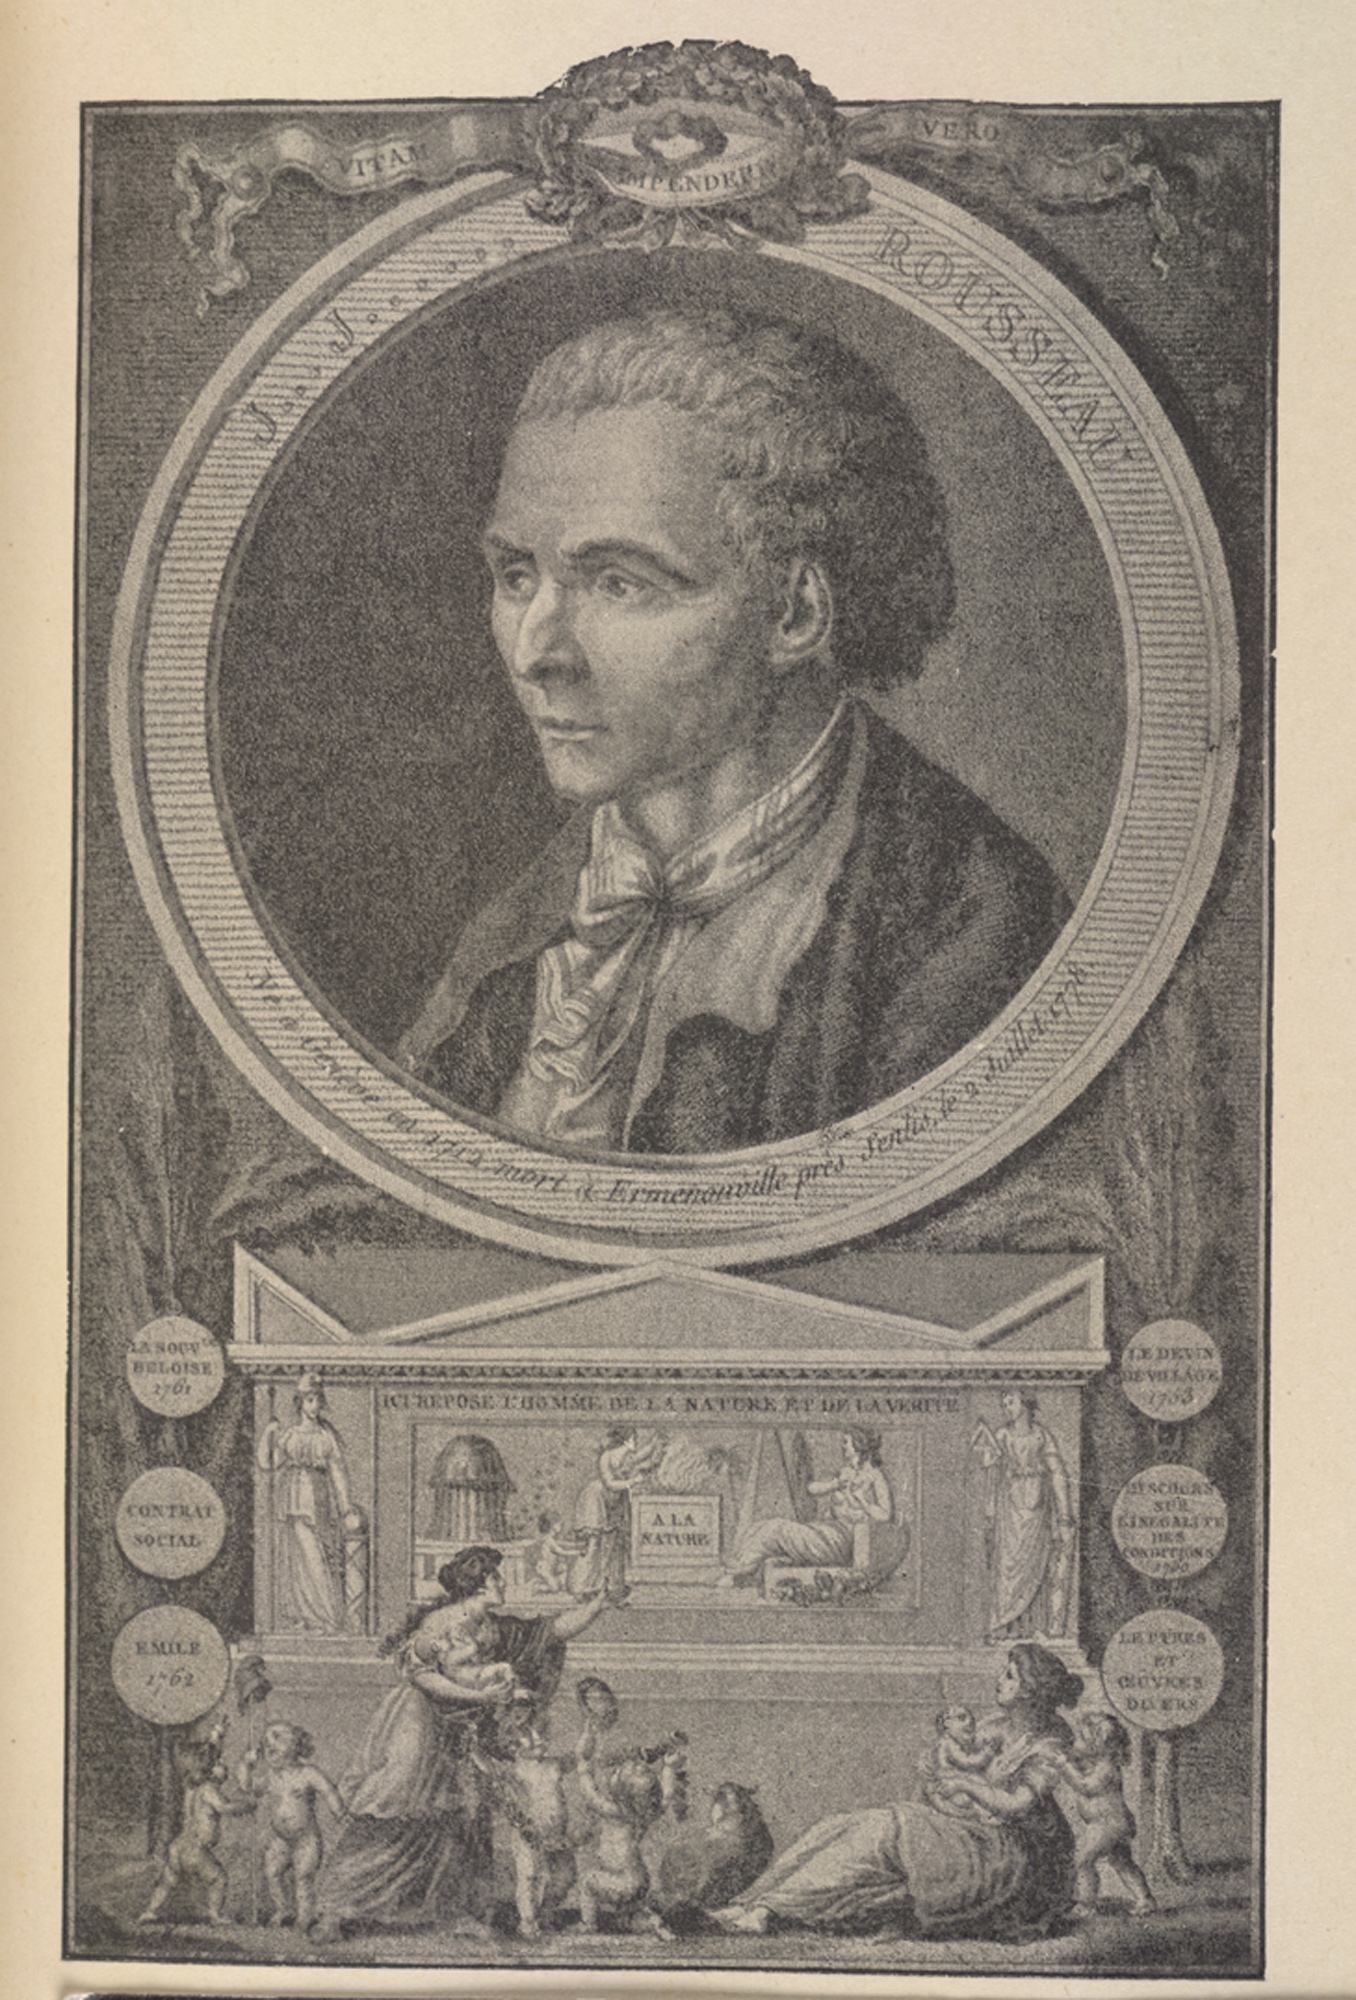 The Social Contract, a frontispiece depicting Jean Jacques Rousseau